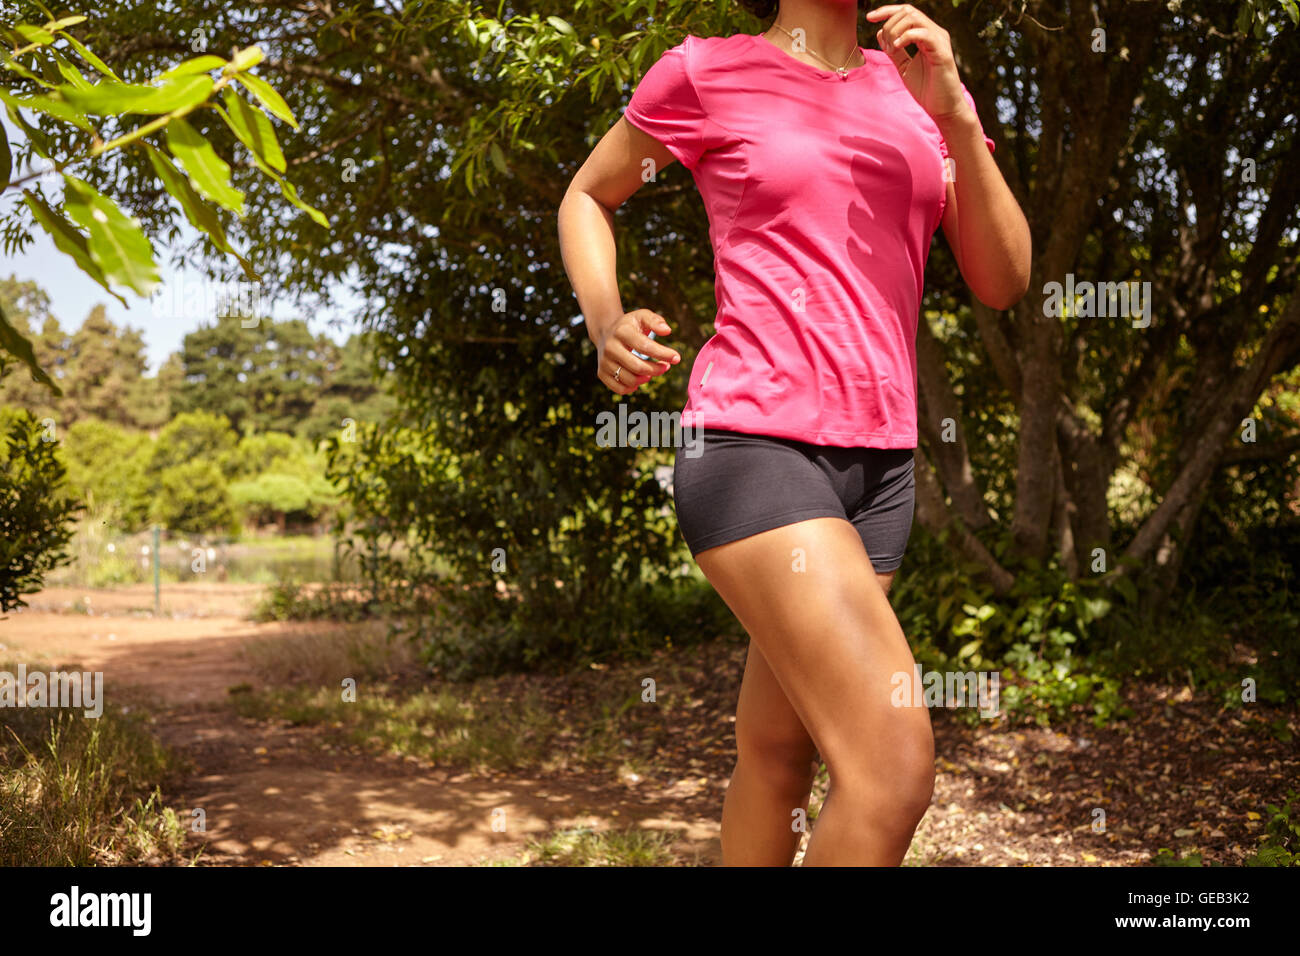 Female body showing from neck to knees running while wearing a pink t-shirt and black pants in a natural area surrounded - Stock Image